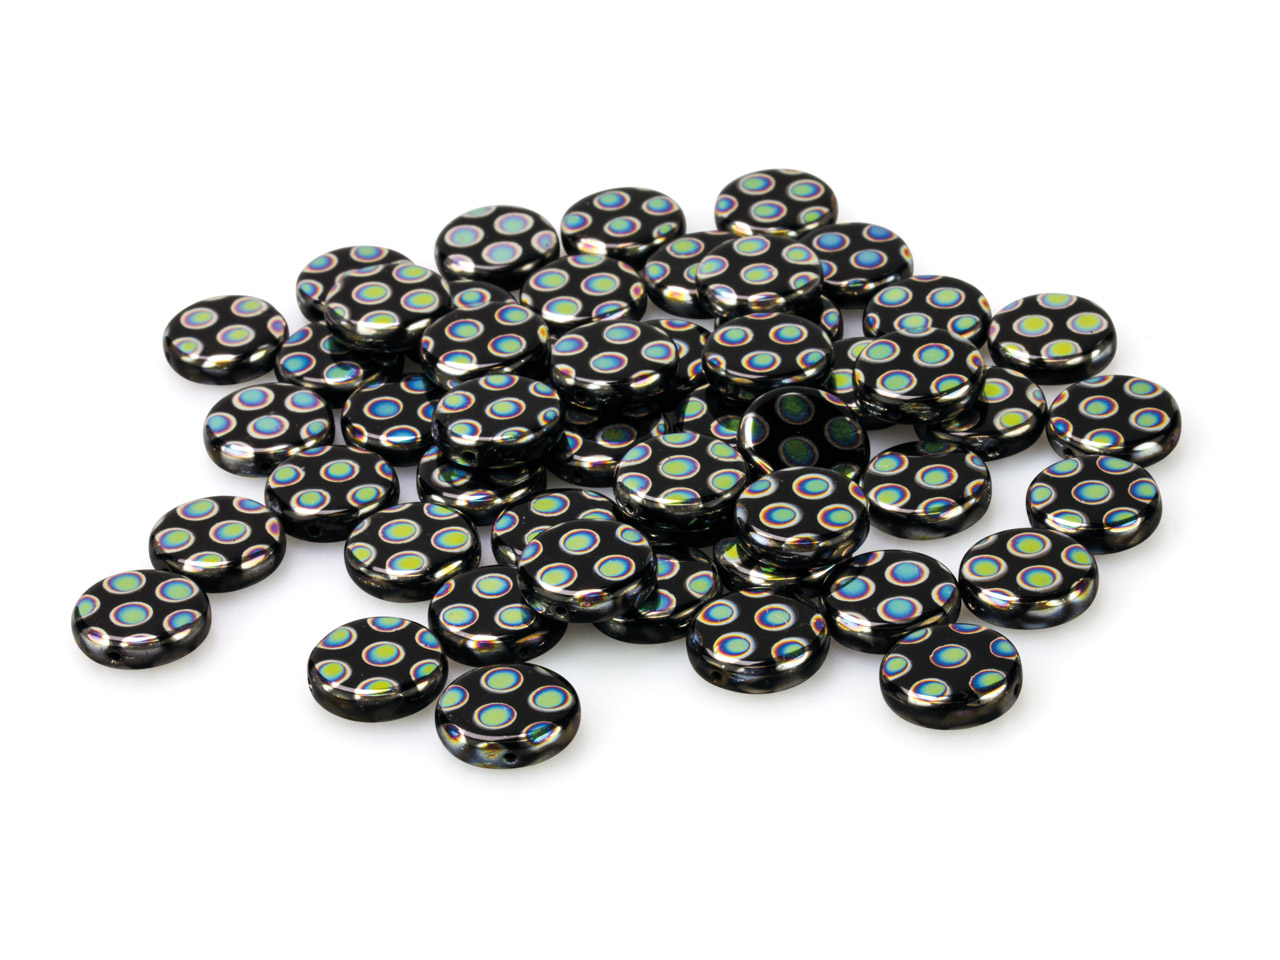 Black Glass Round Beads, Vacuum    Plated With Coloured Spots, 12mm,  Pack of 50